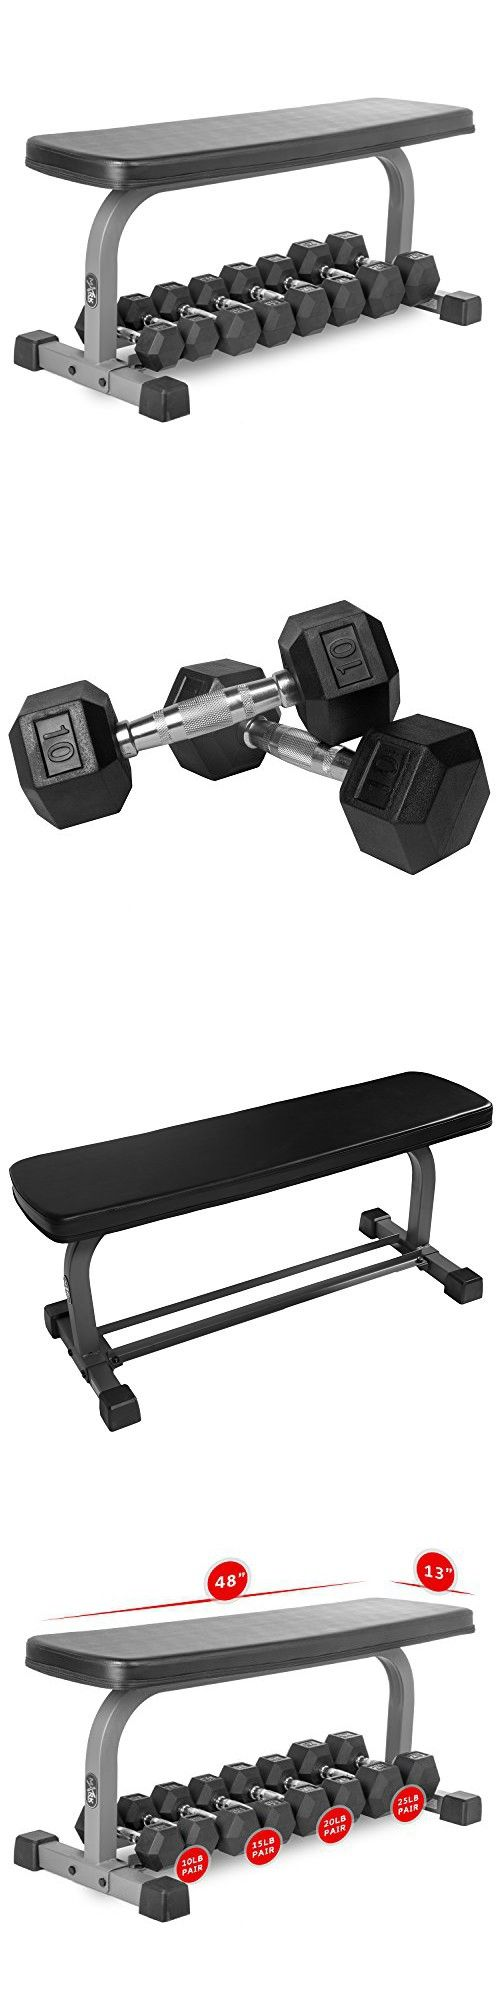 XMark Wide Base Flat Utility Bench With Dumbbell Storage and 140 lbs. of XMark Premium Quality Rubber Coated Hex Dumbbells